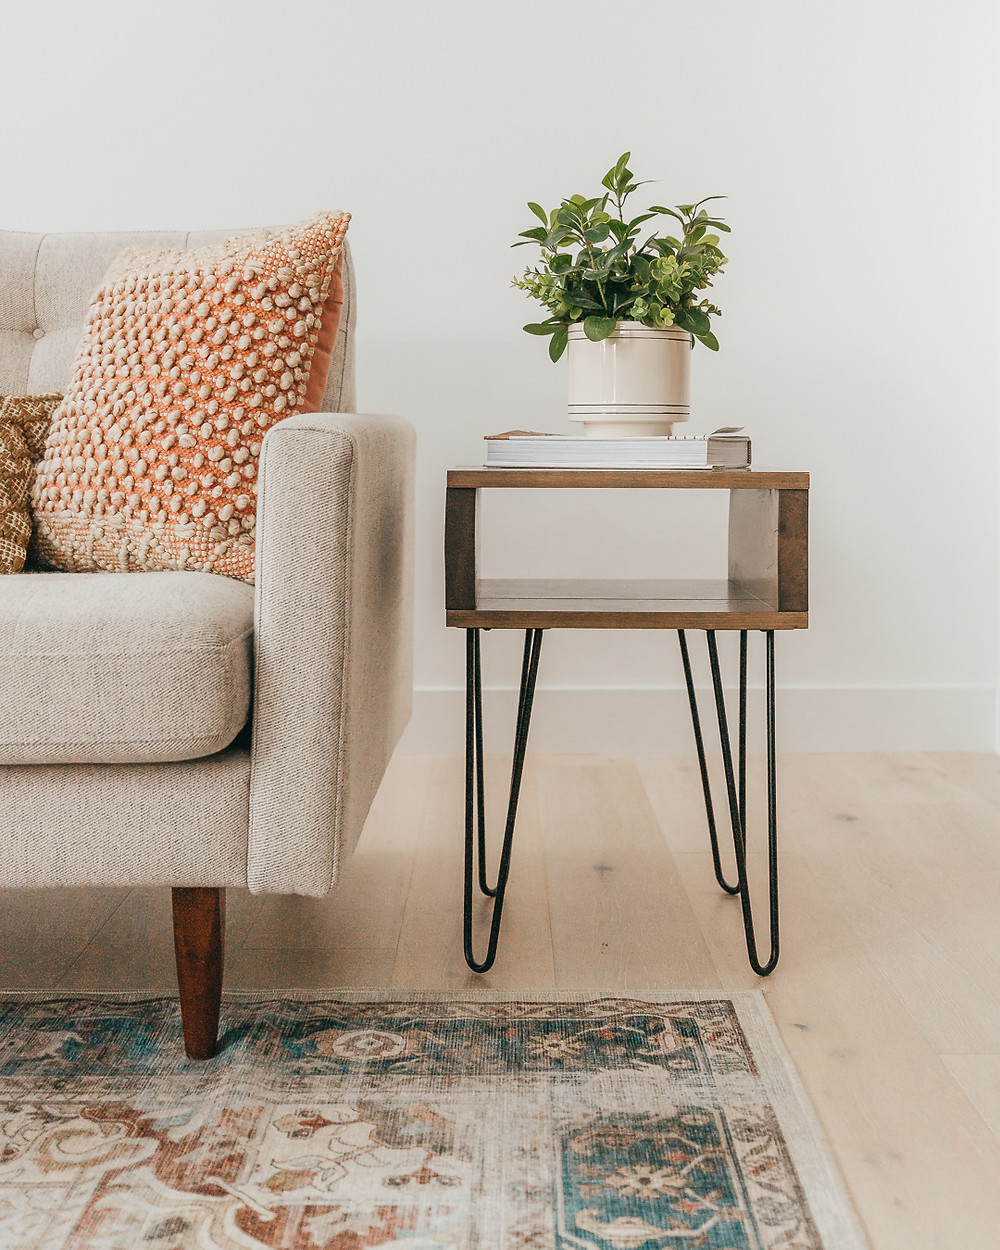 Wood sidetable with black accent legs book and plant area rug on natural wood floors cream color sofa with orange textured throw pillow